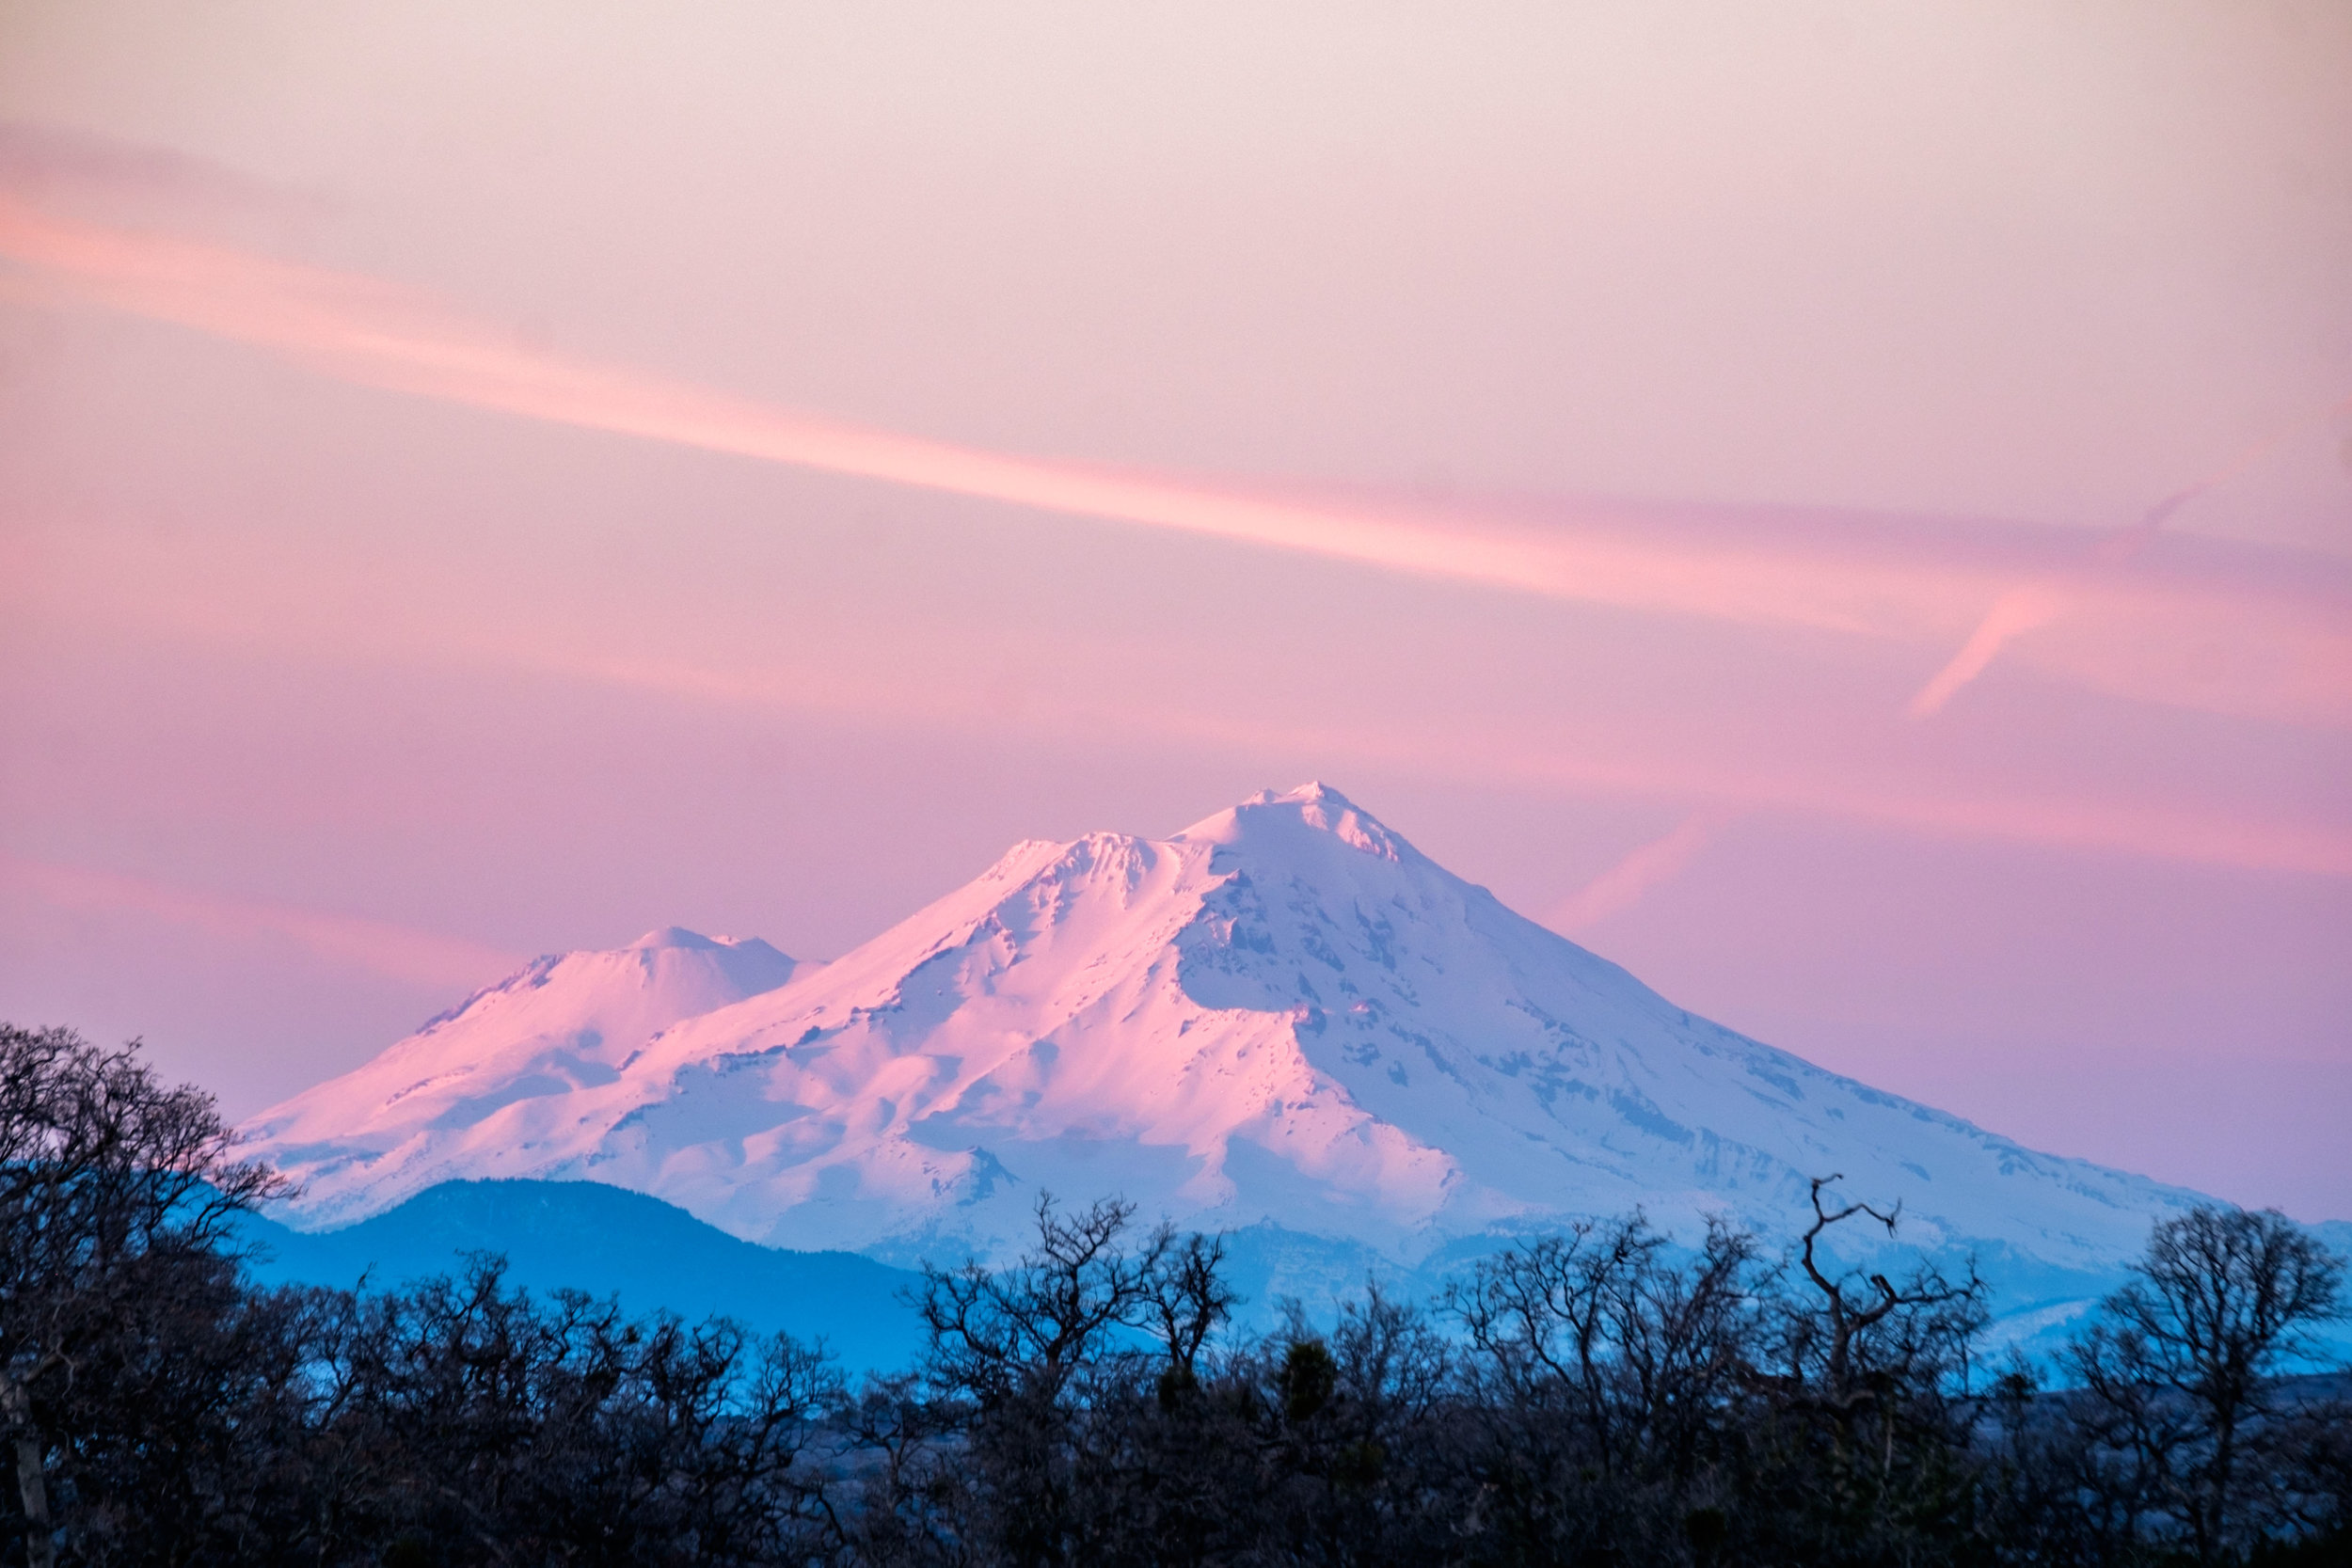 We caught this gorgeous sunset over the commanding Lassen Peak on our way out of the park.